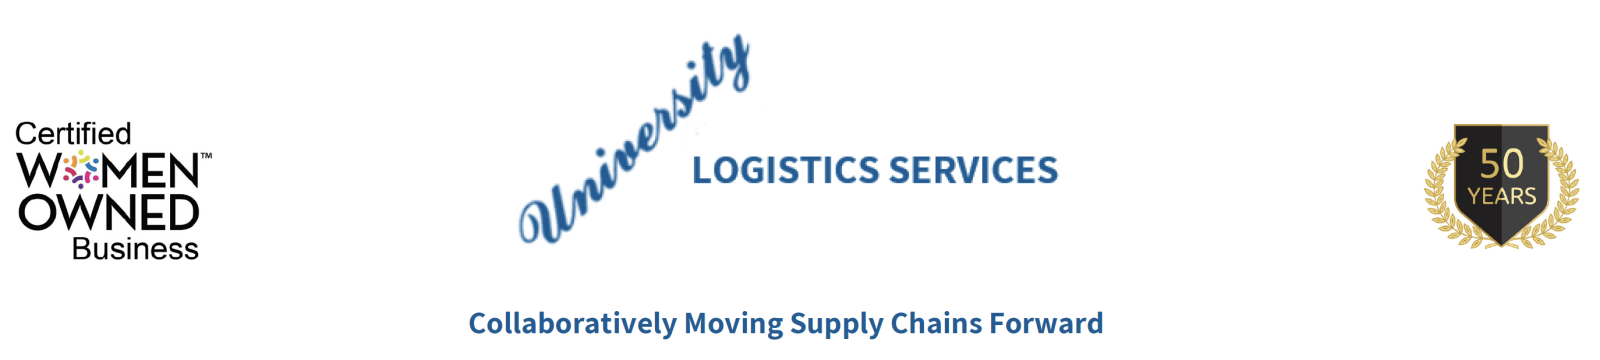 The Top Logistics Company in the Midwest